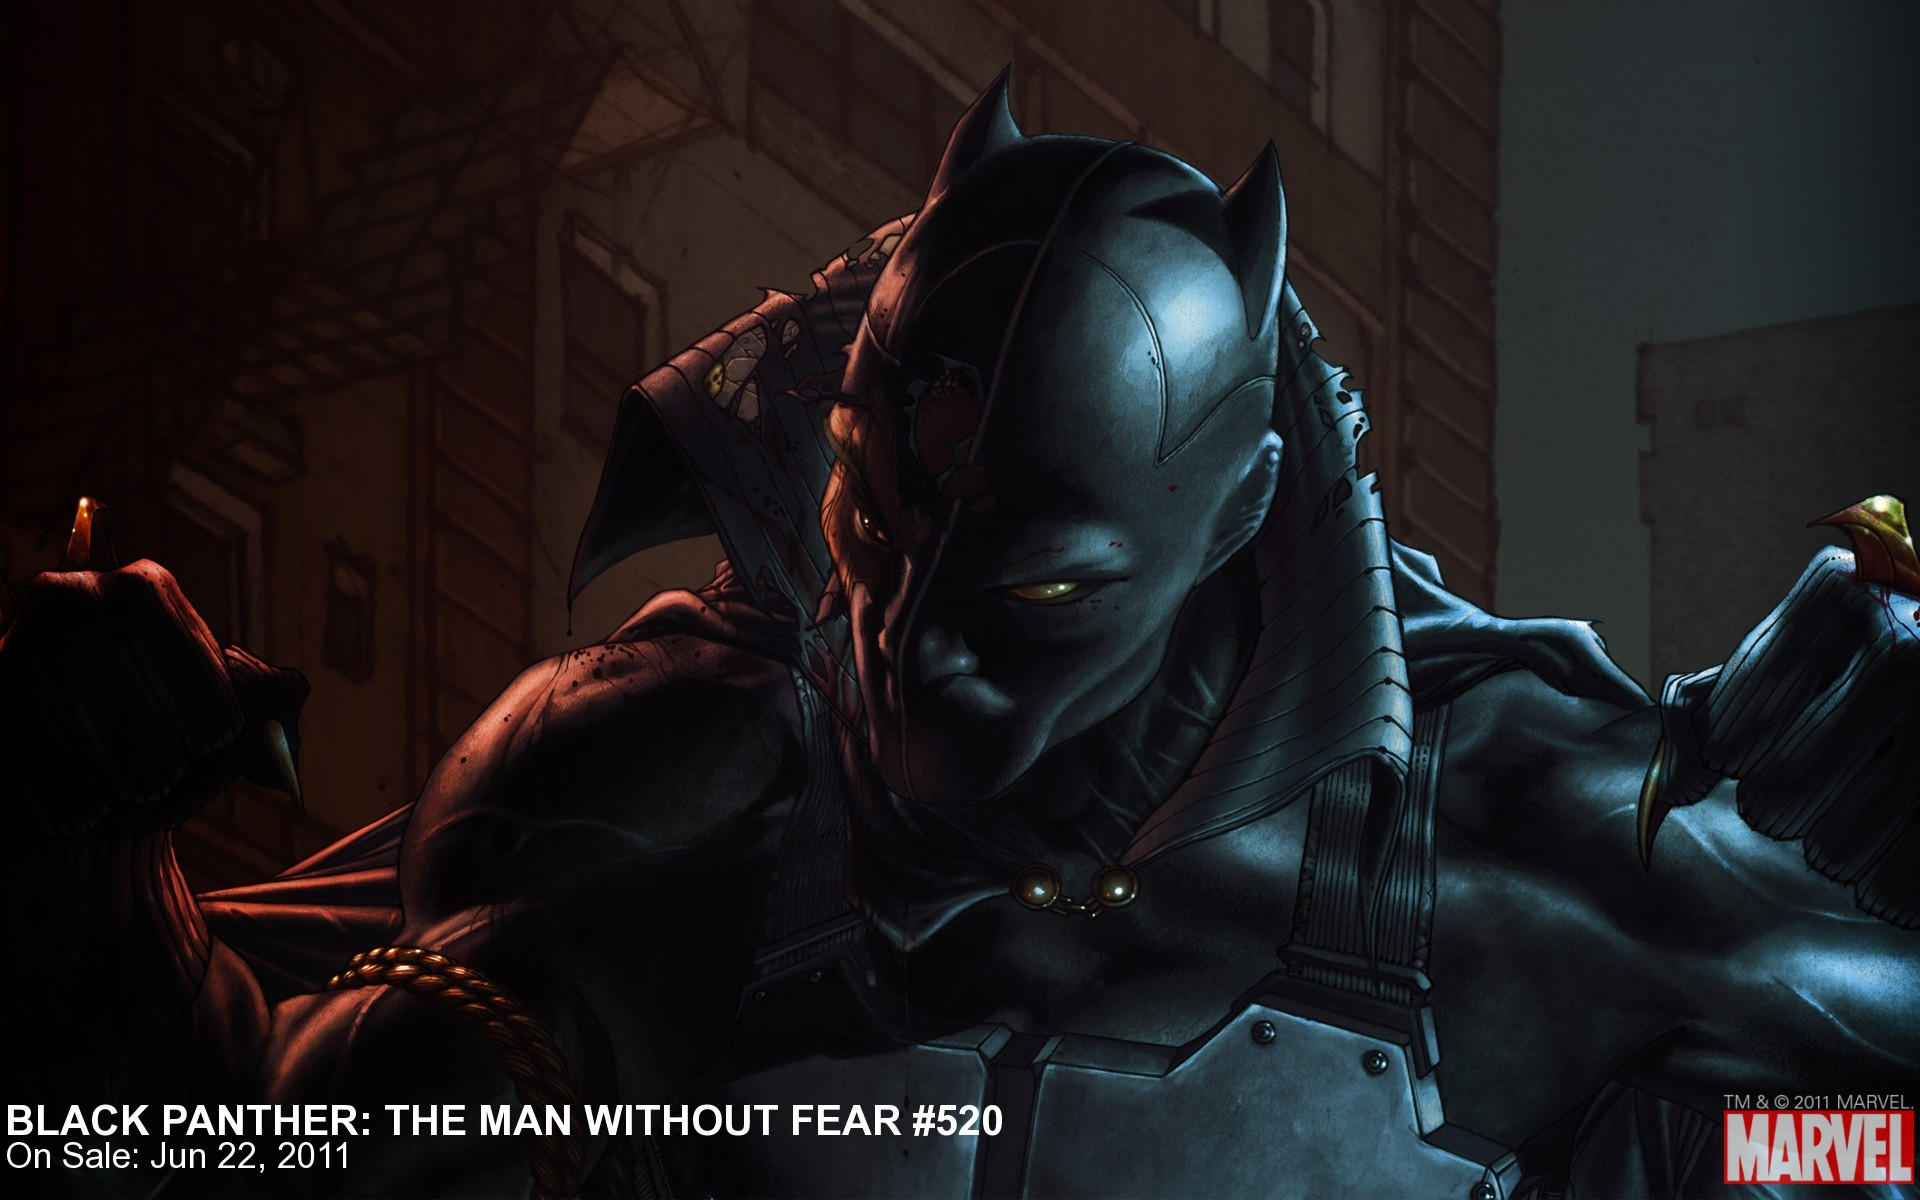 Black Panther Man Without Fear 520 Wallpaper Marvelcom 1920x1200